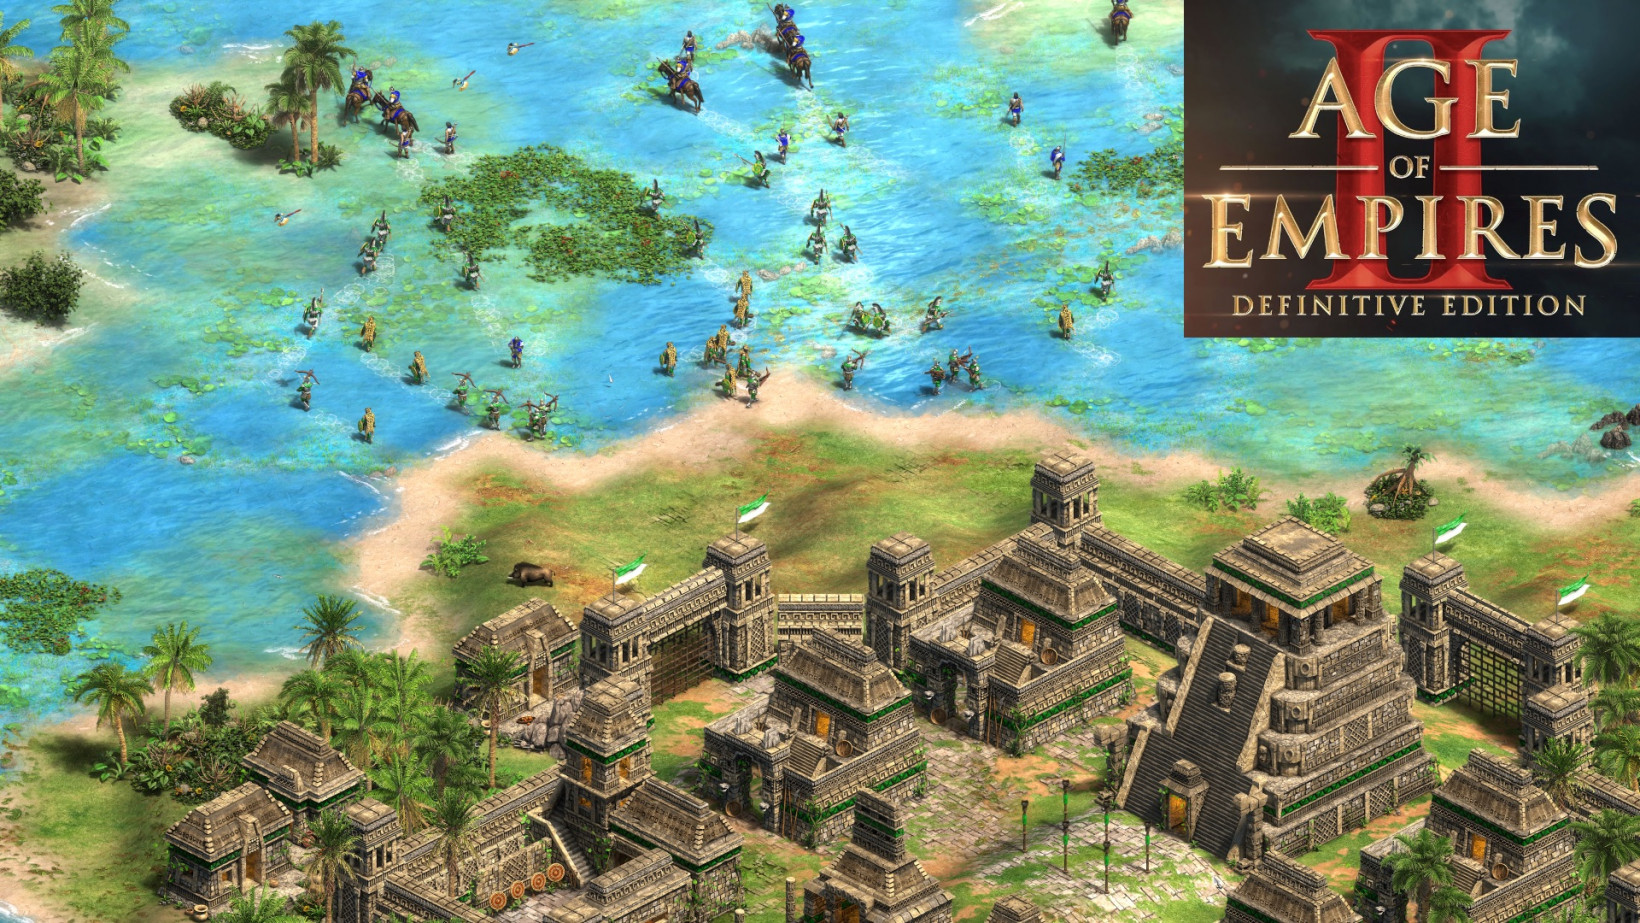 Age of Empires II: Definitive Edition is arriving on November 14